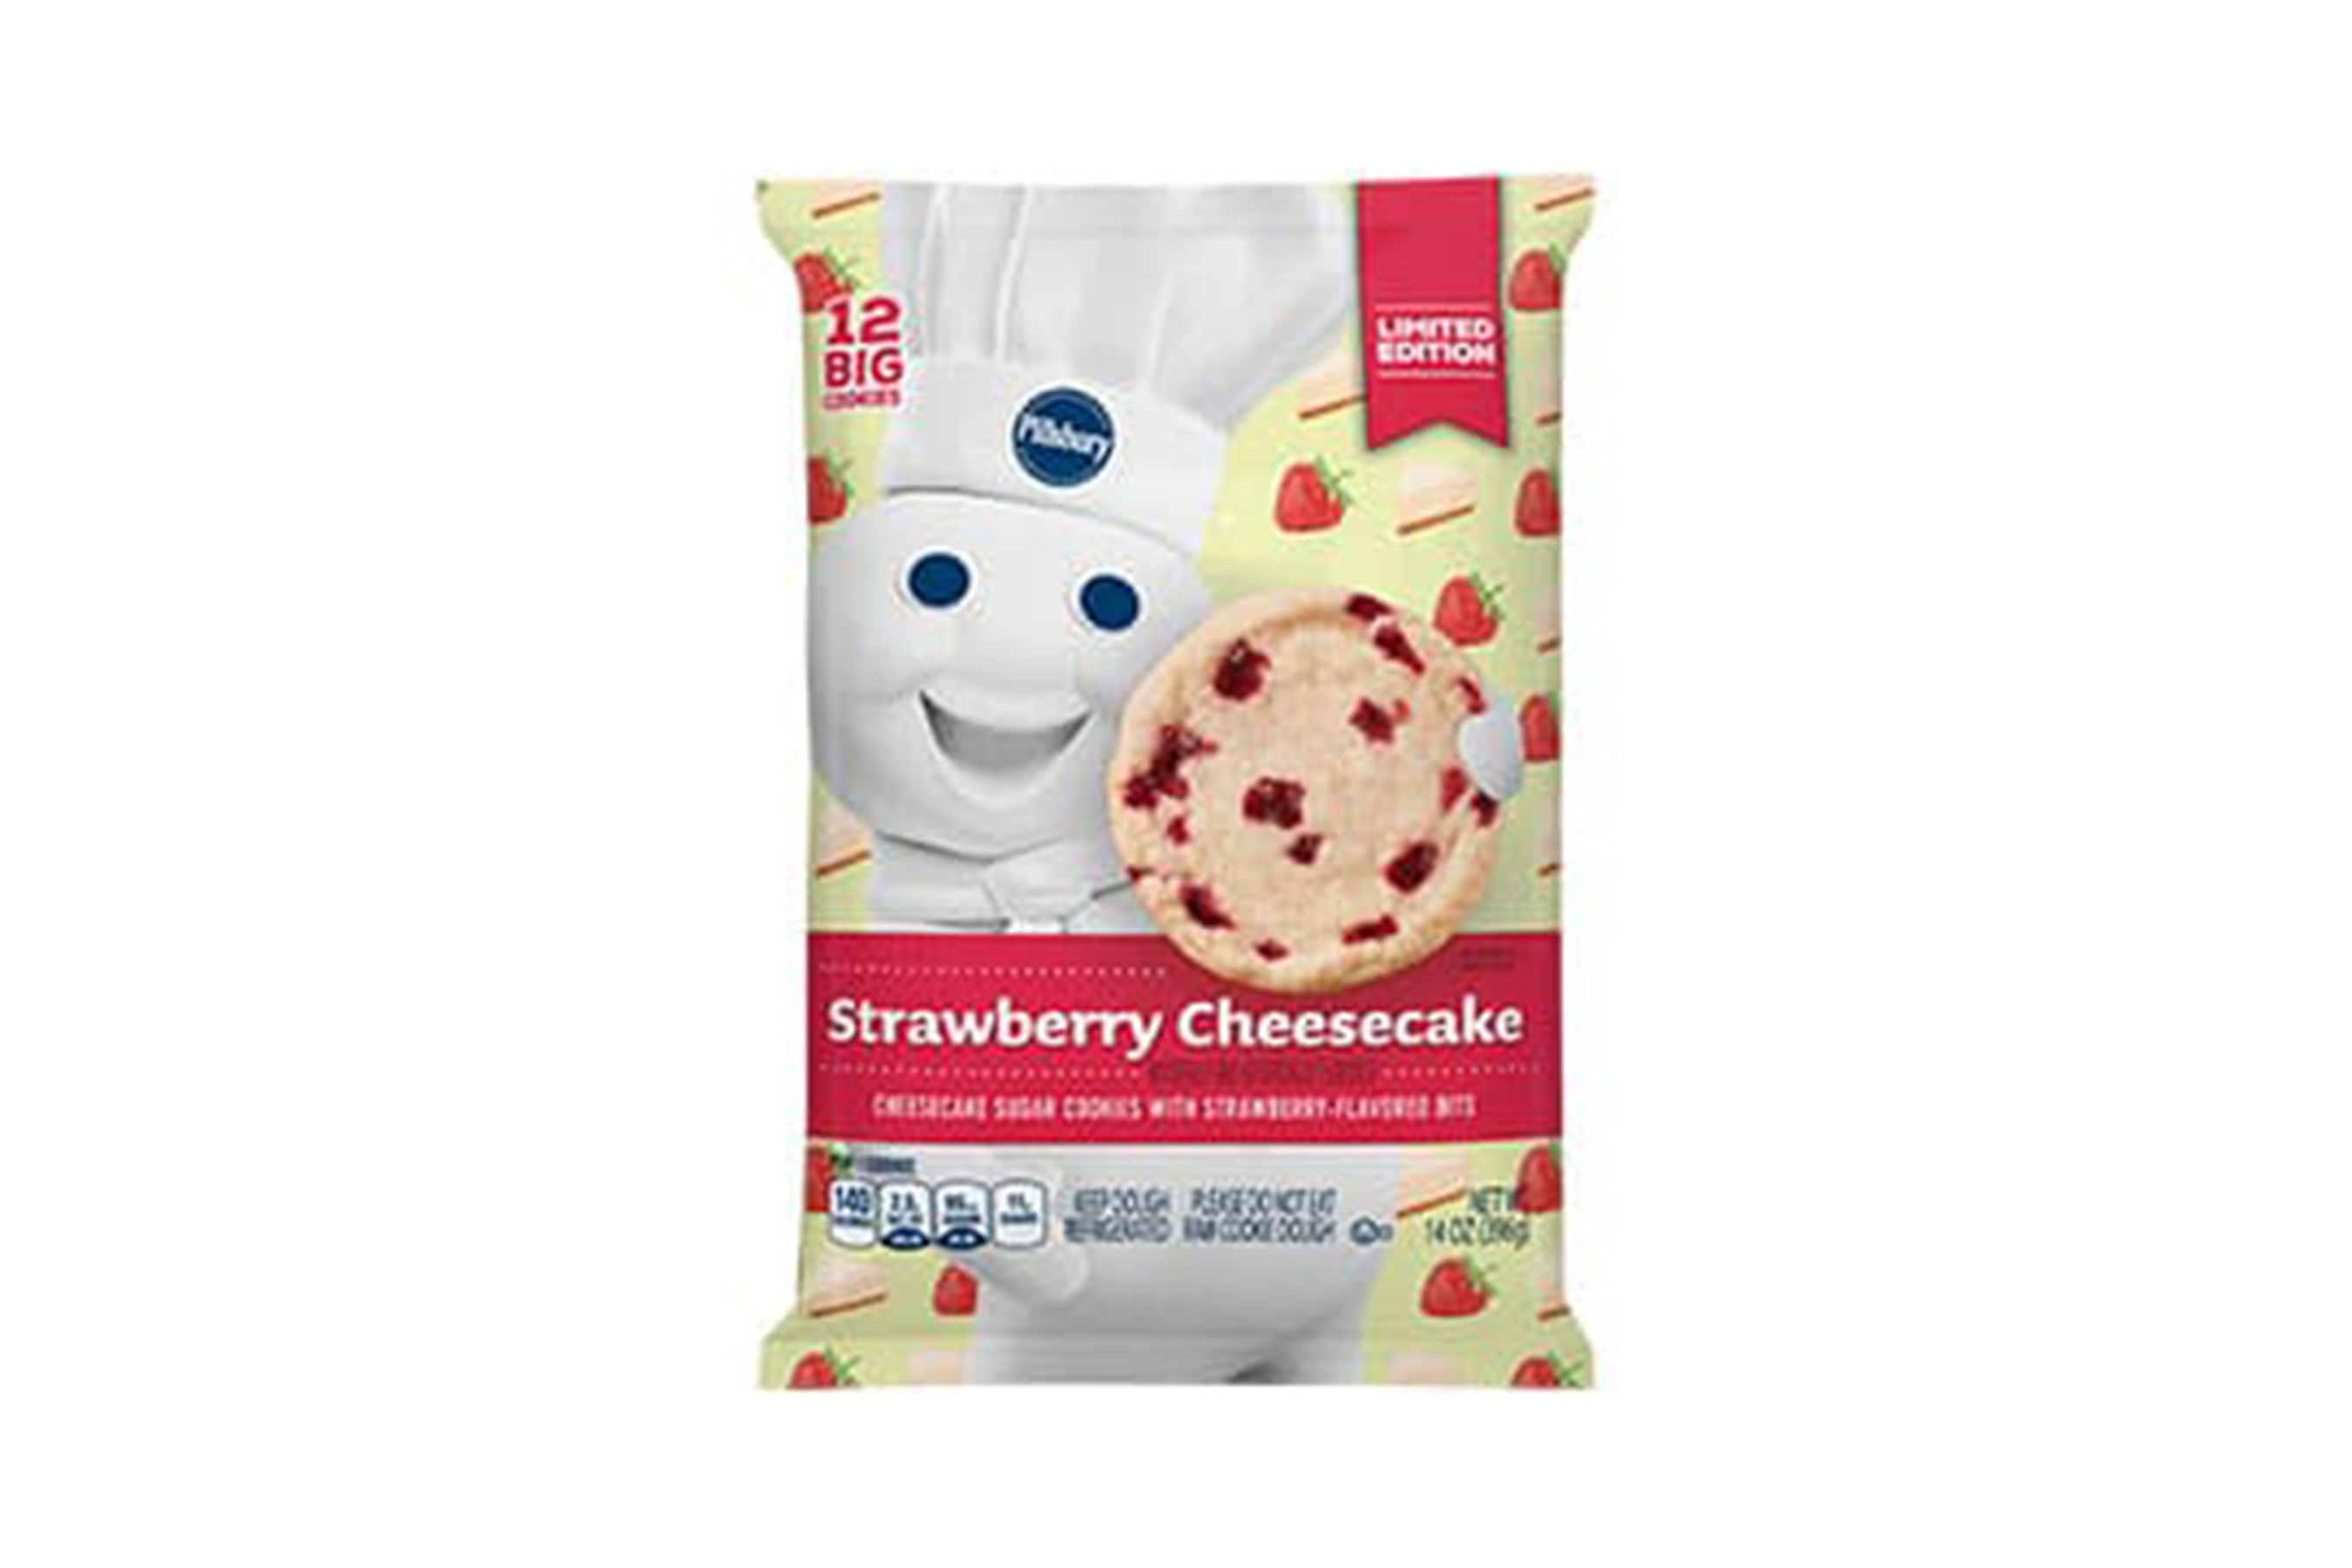 Sorry Resolutions! Pillsbury Debuts Limited Edition Sugar Cookies Flavor Strawberry Cheesecake